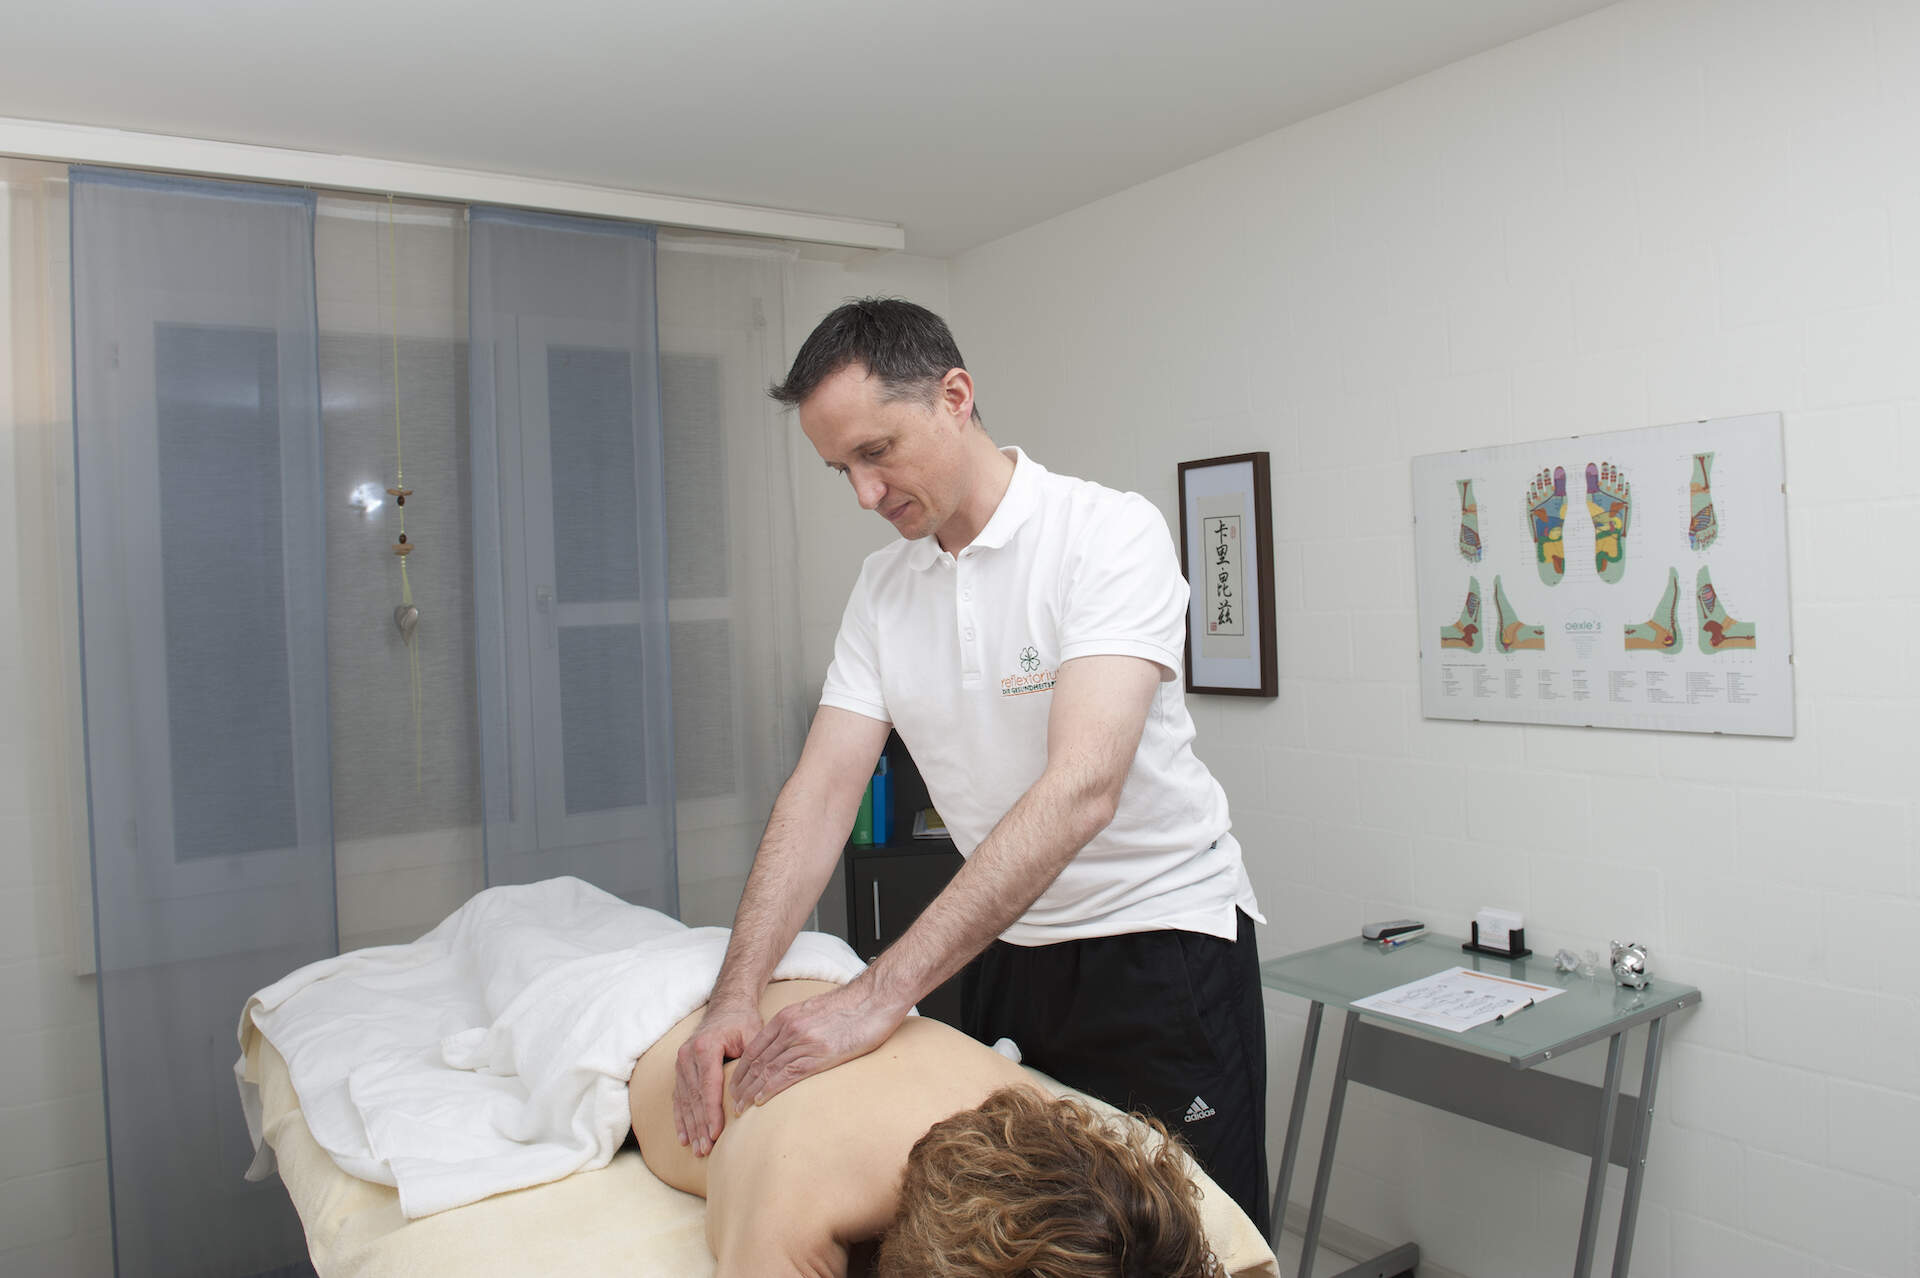 Healthy Massage - individual to your needs